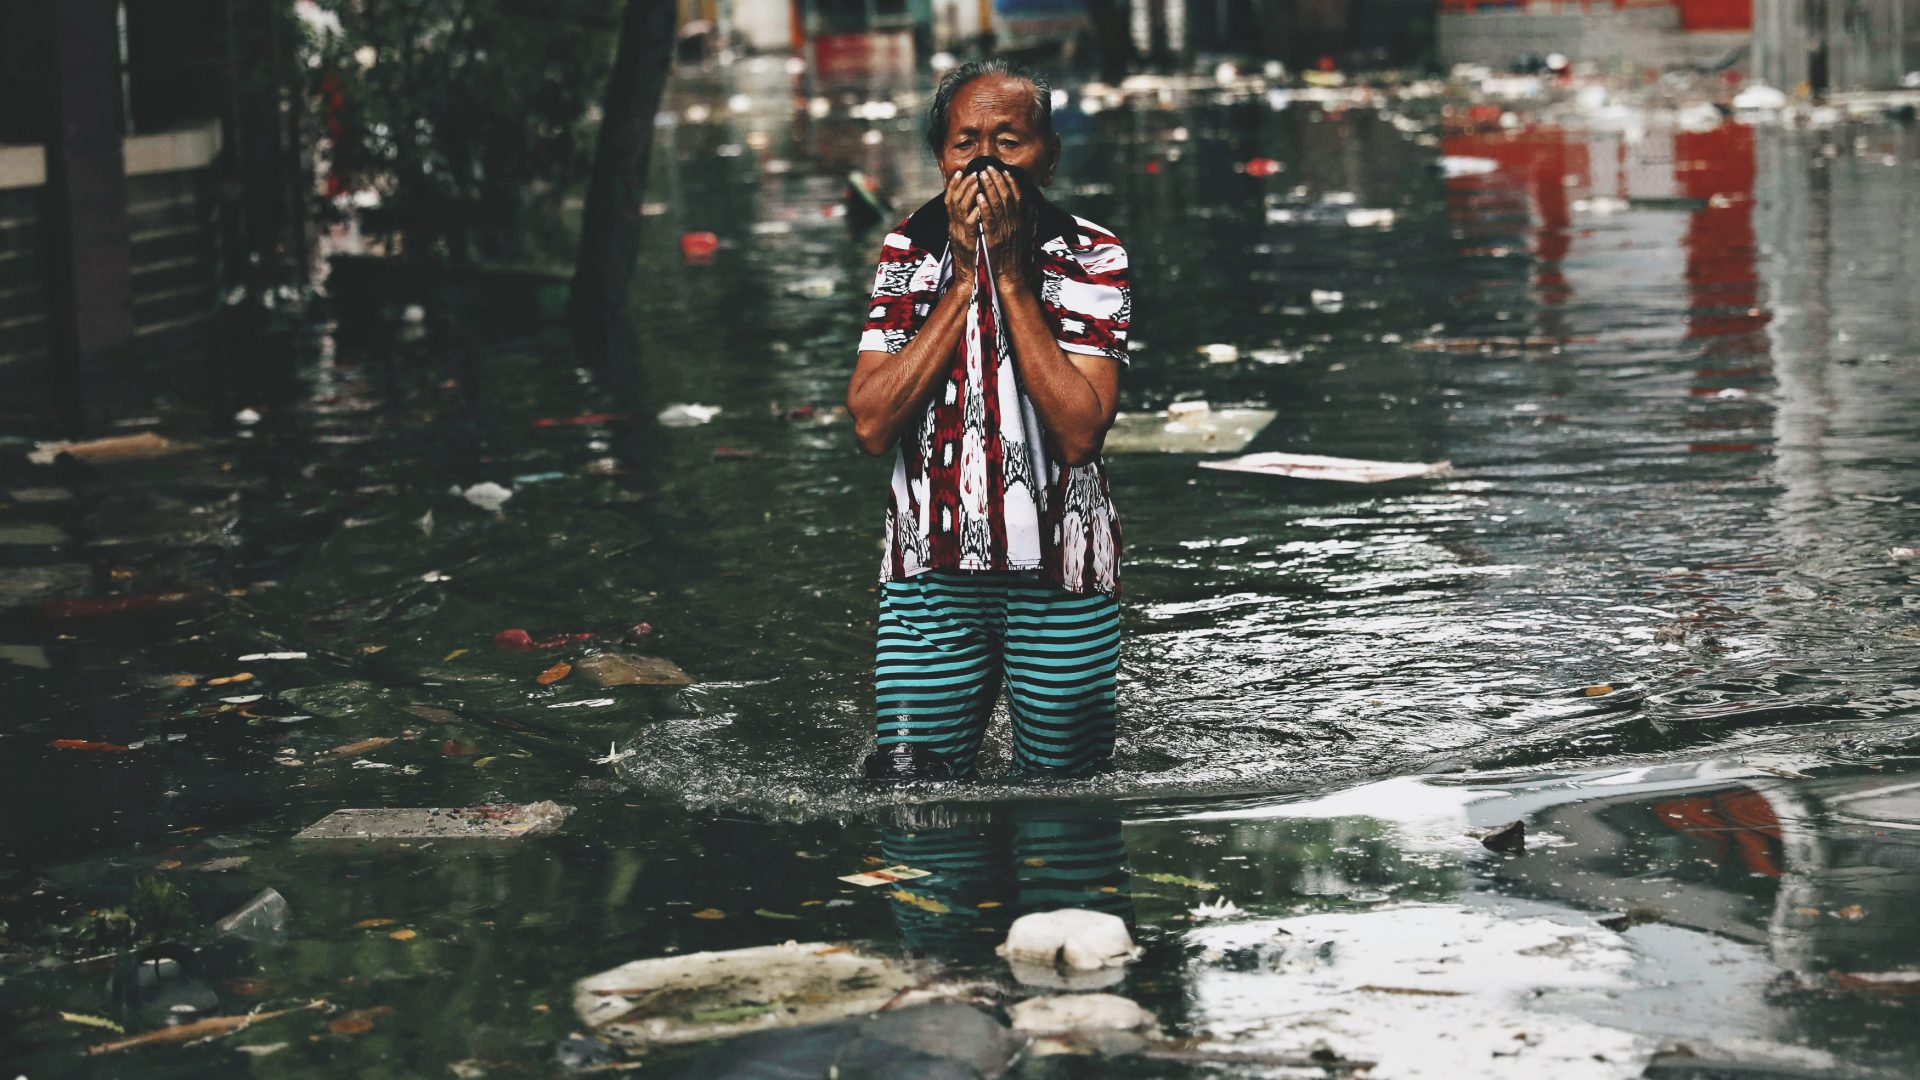 Jakarta's Flood: Not The Ordinary Floods